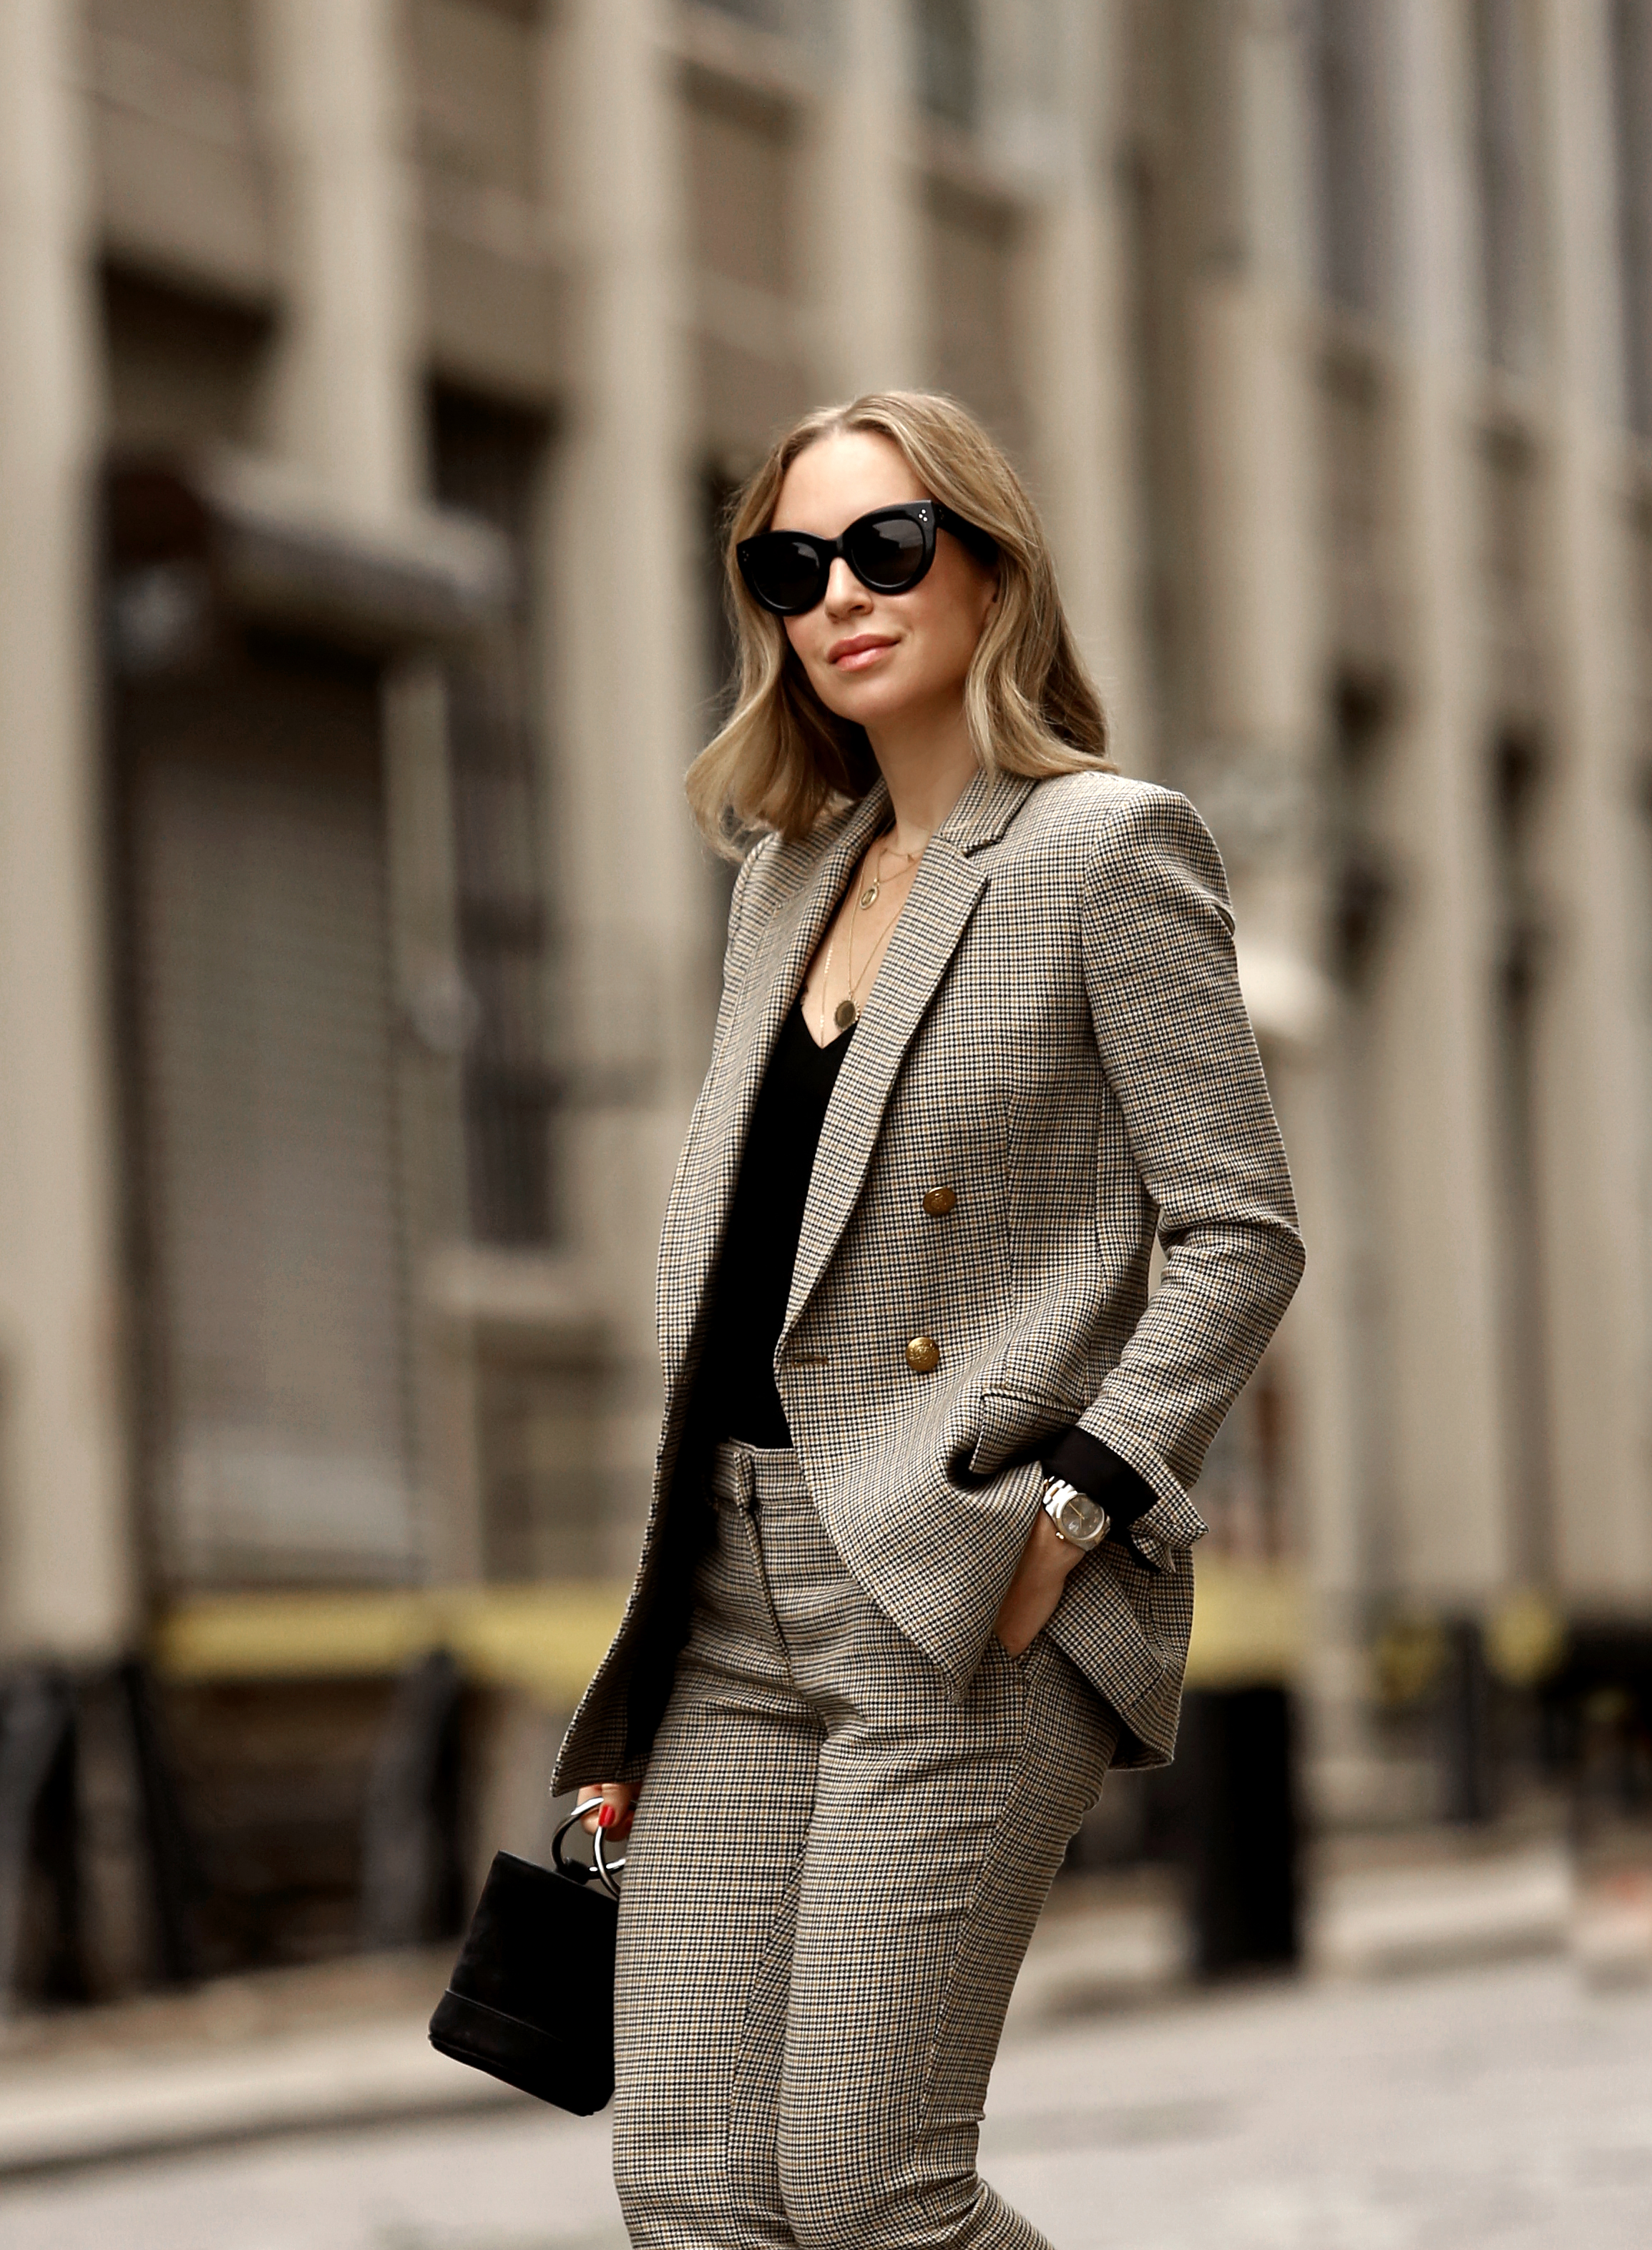 Plaid Power Suit | A.I.C. Suit